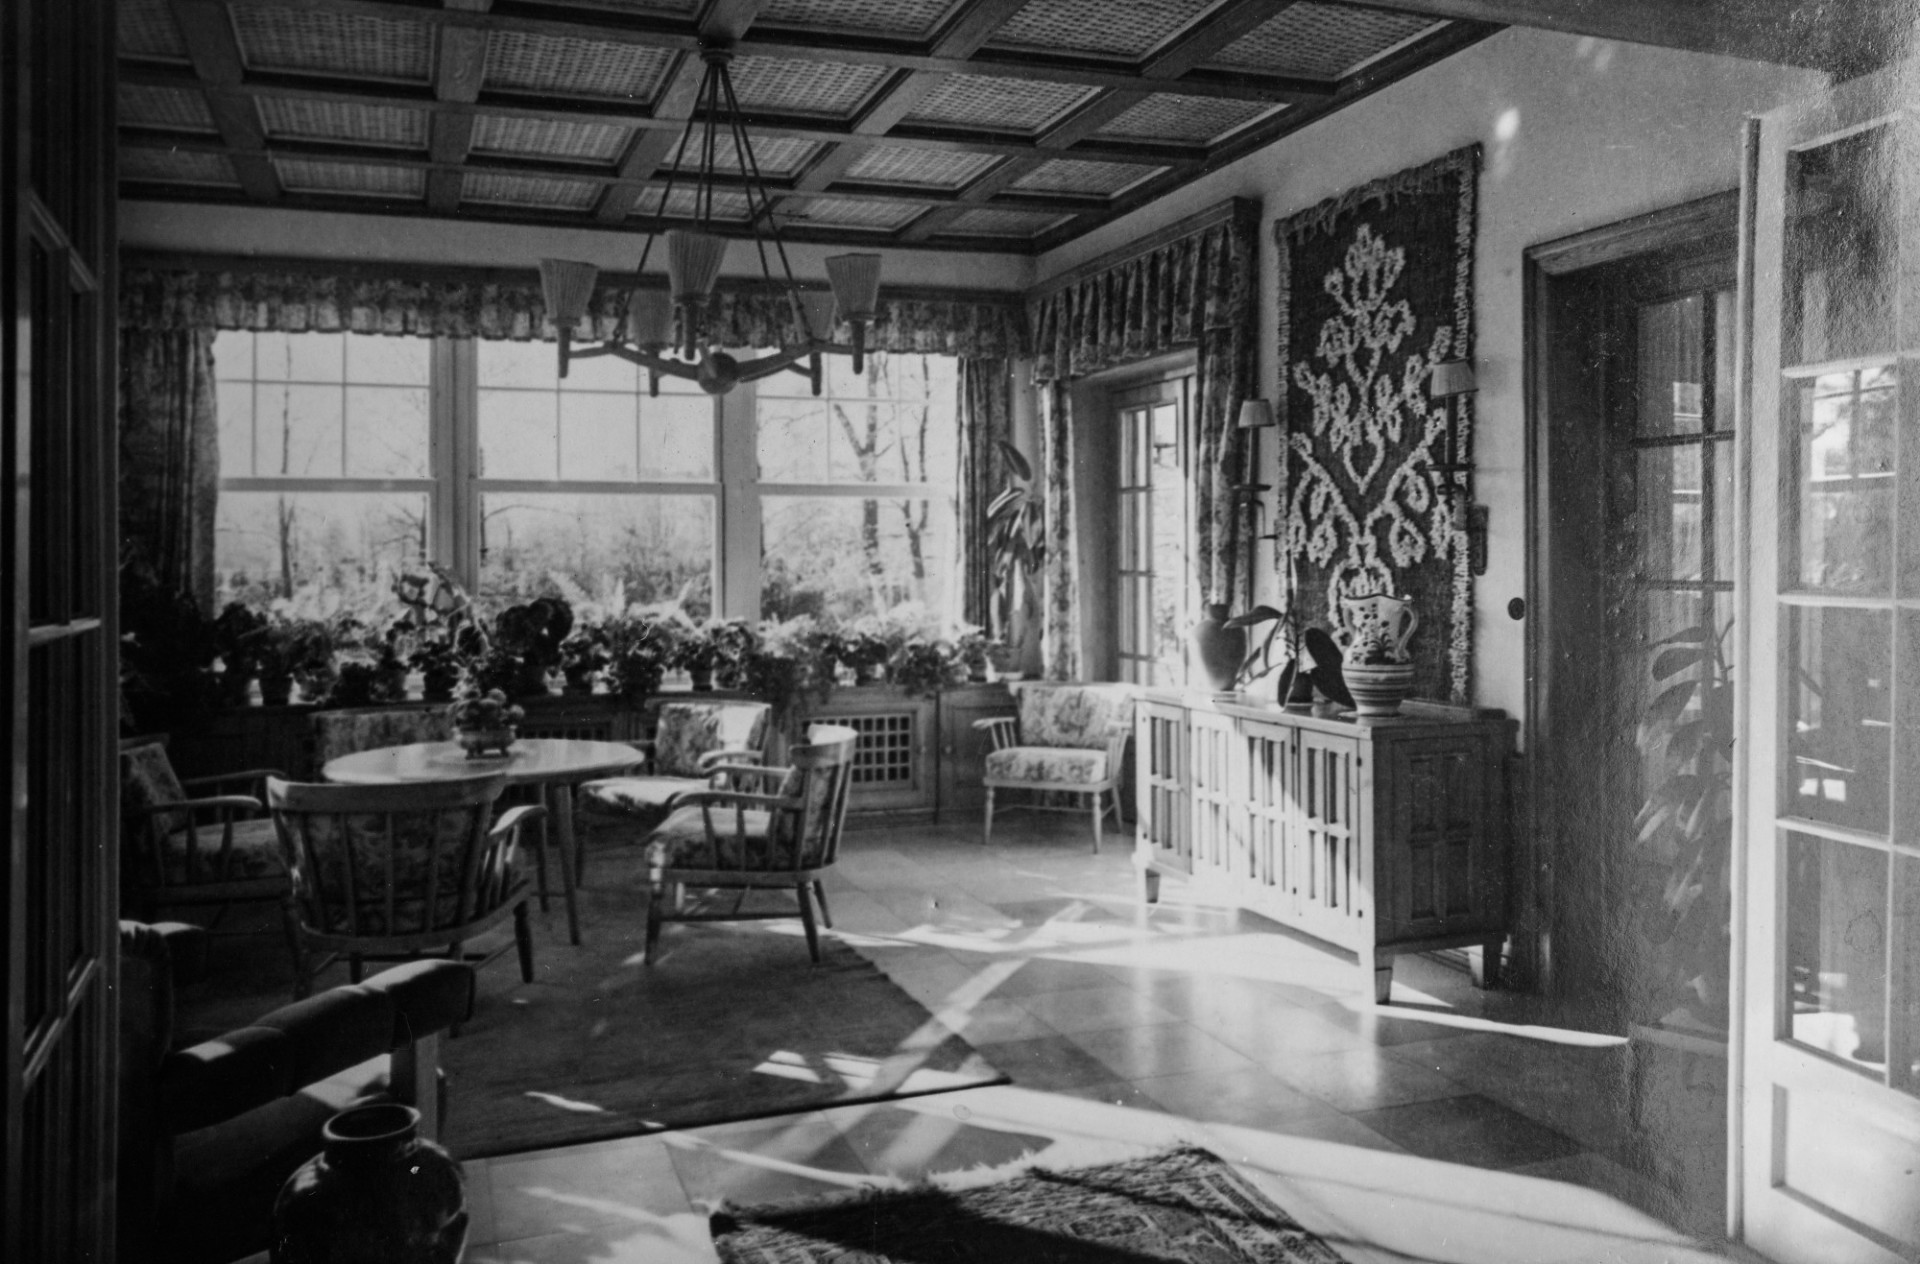 living room in germany 1950